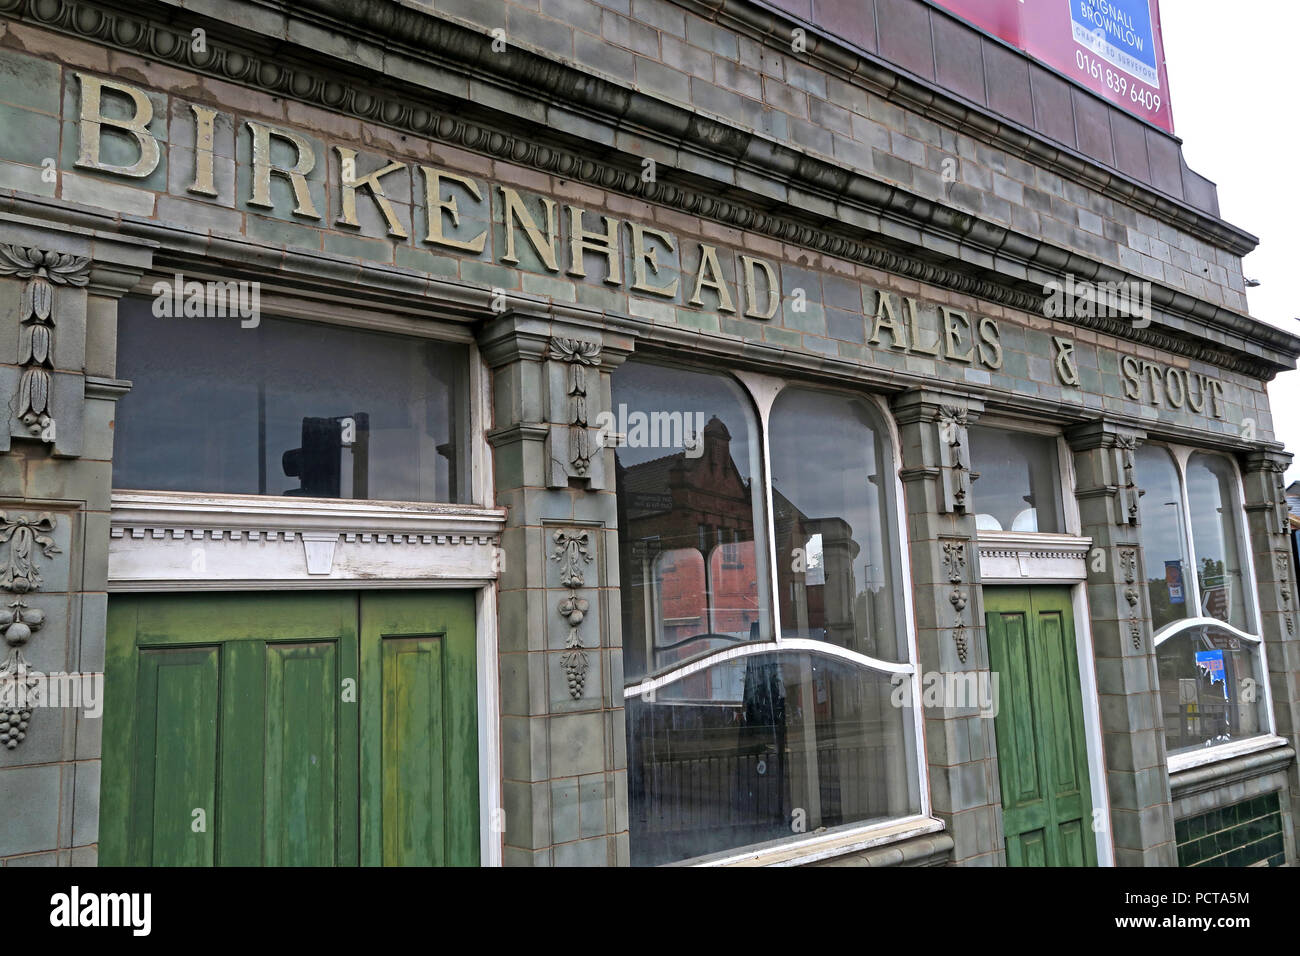 Tiled Pier Hotel Exterior, Birkenhead Ales & Stout, Birkenhead Brewery, Wirral, Merseyside, North West England, UK, - Stock Image